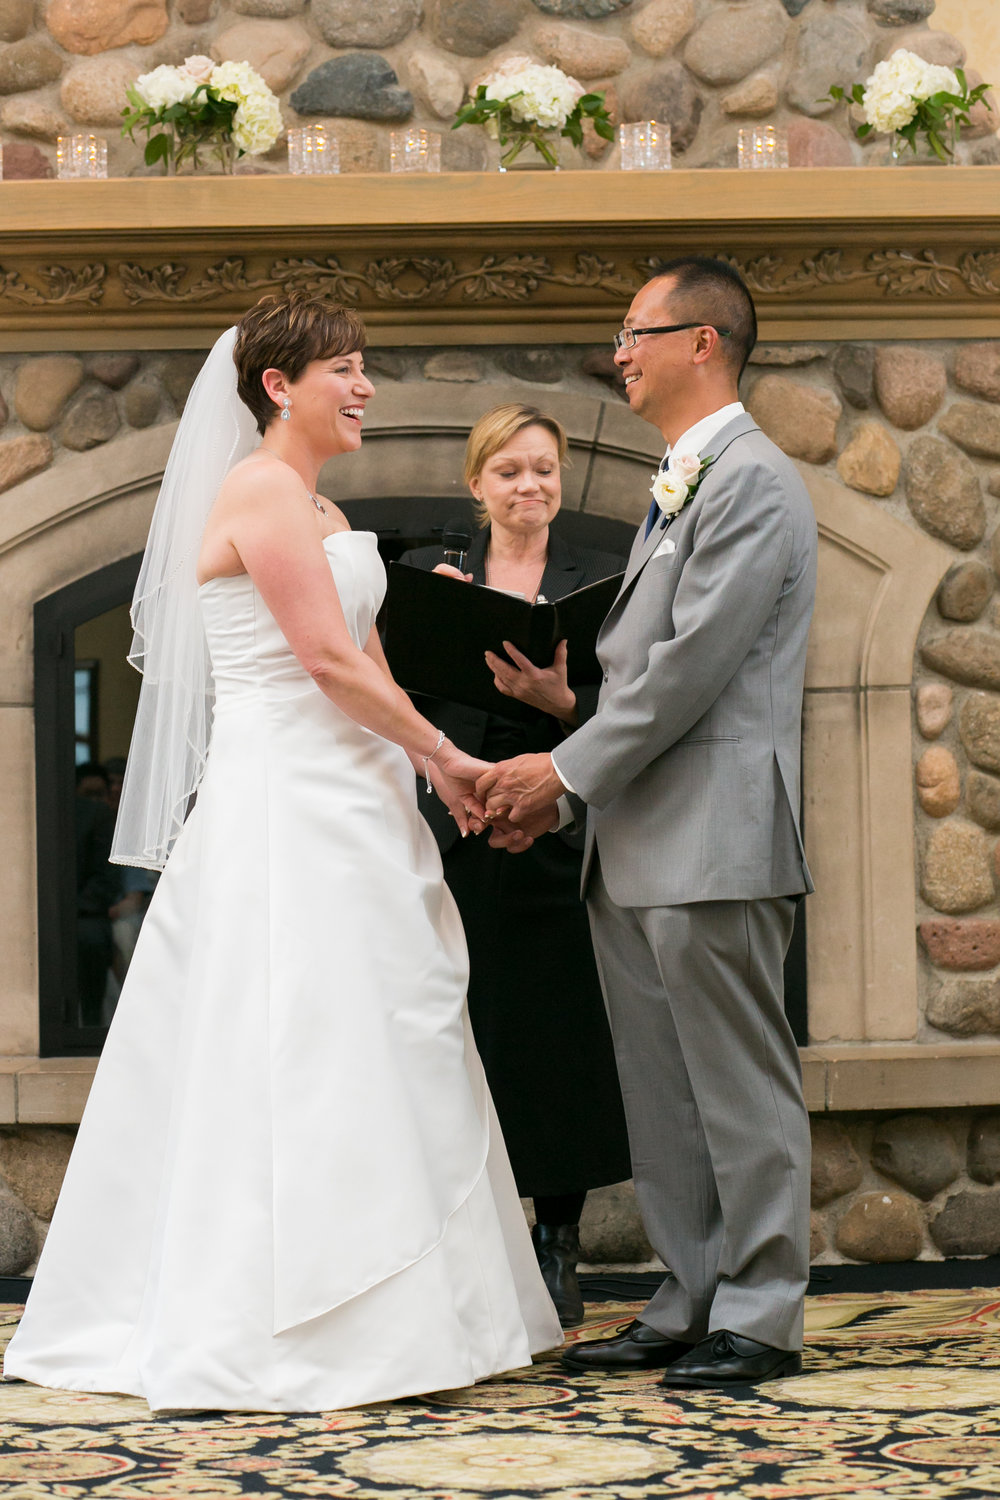 Rush Creek Golf Club Maple Grove MN Wedding (25 of 46).jpg